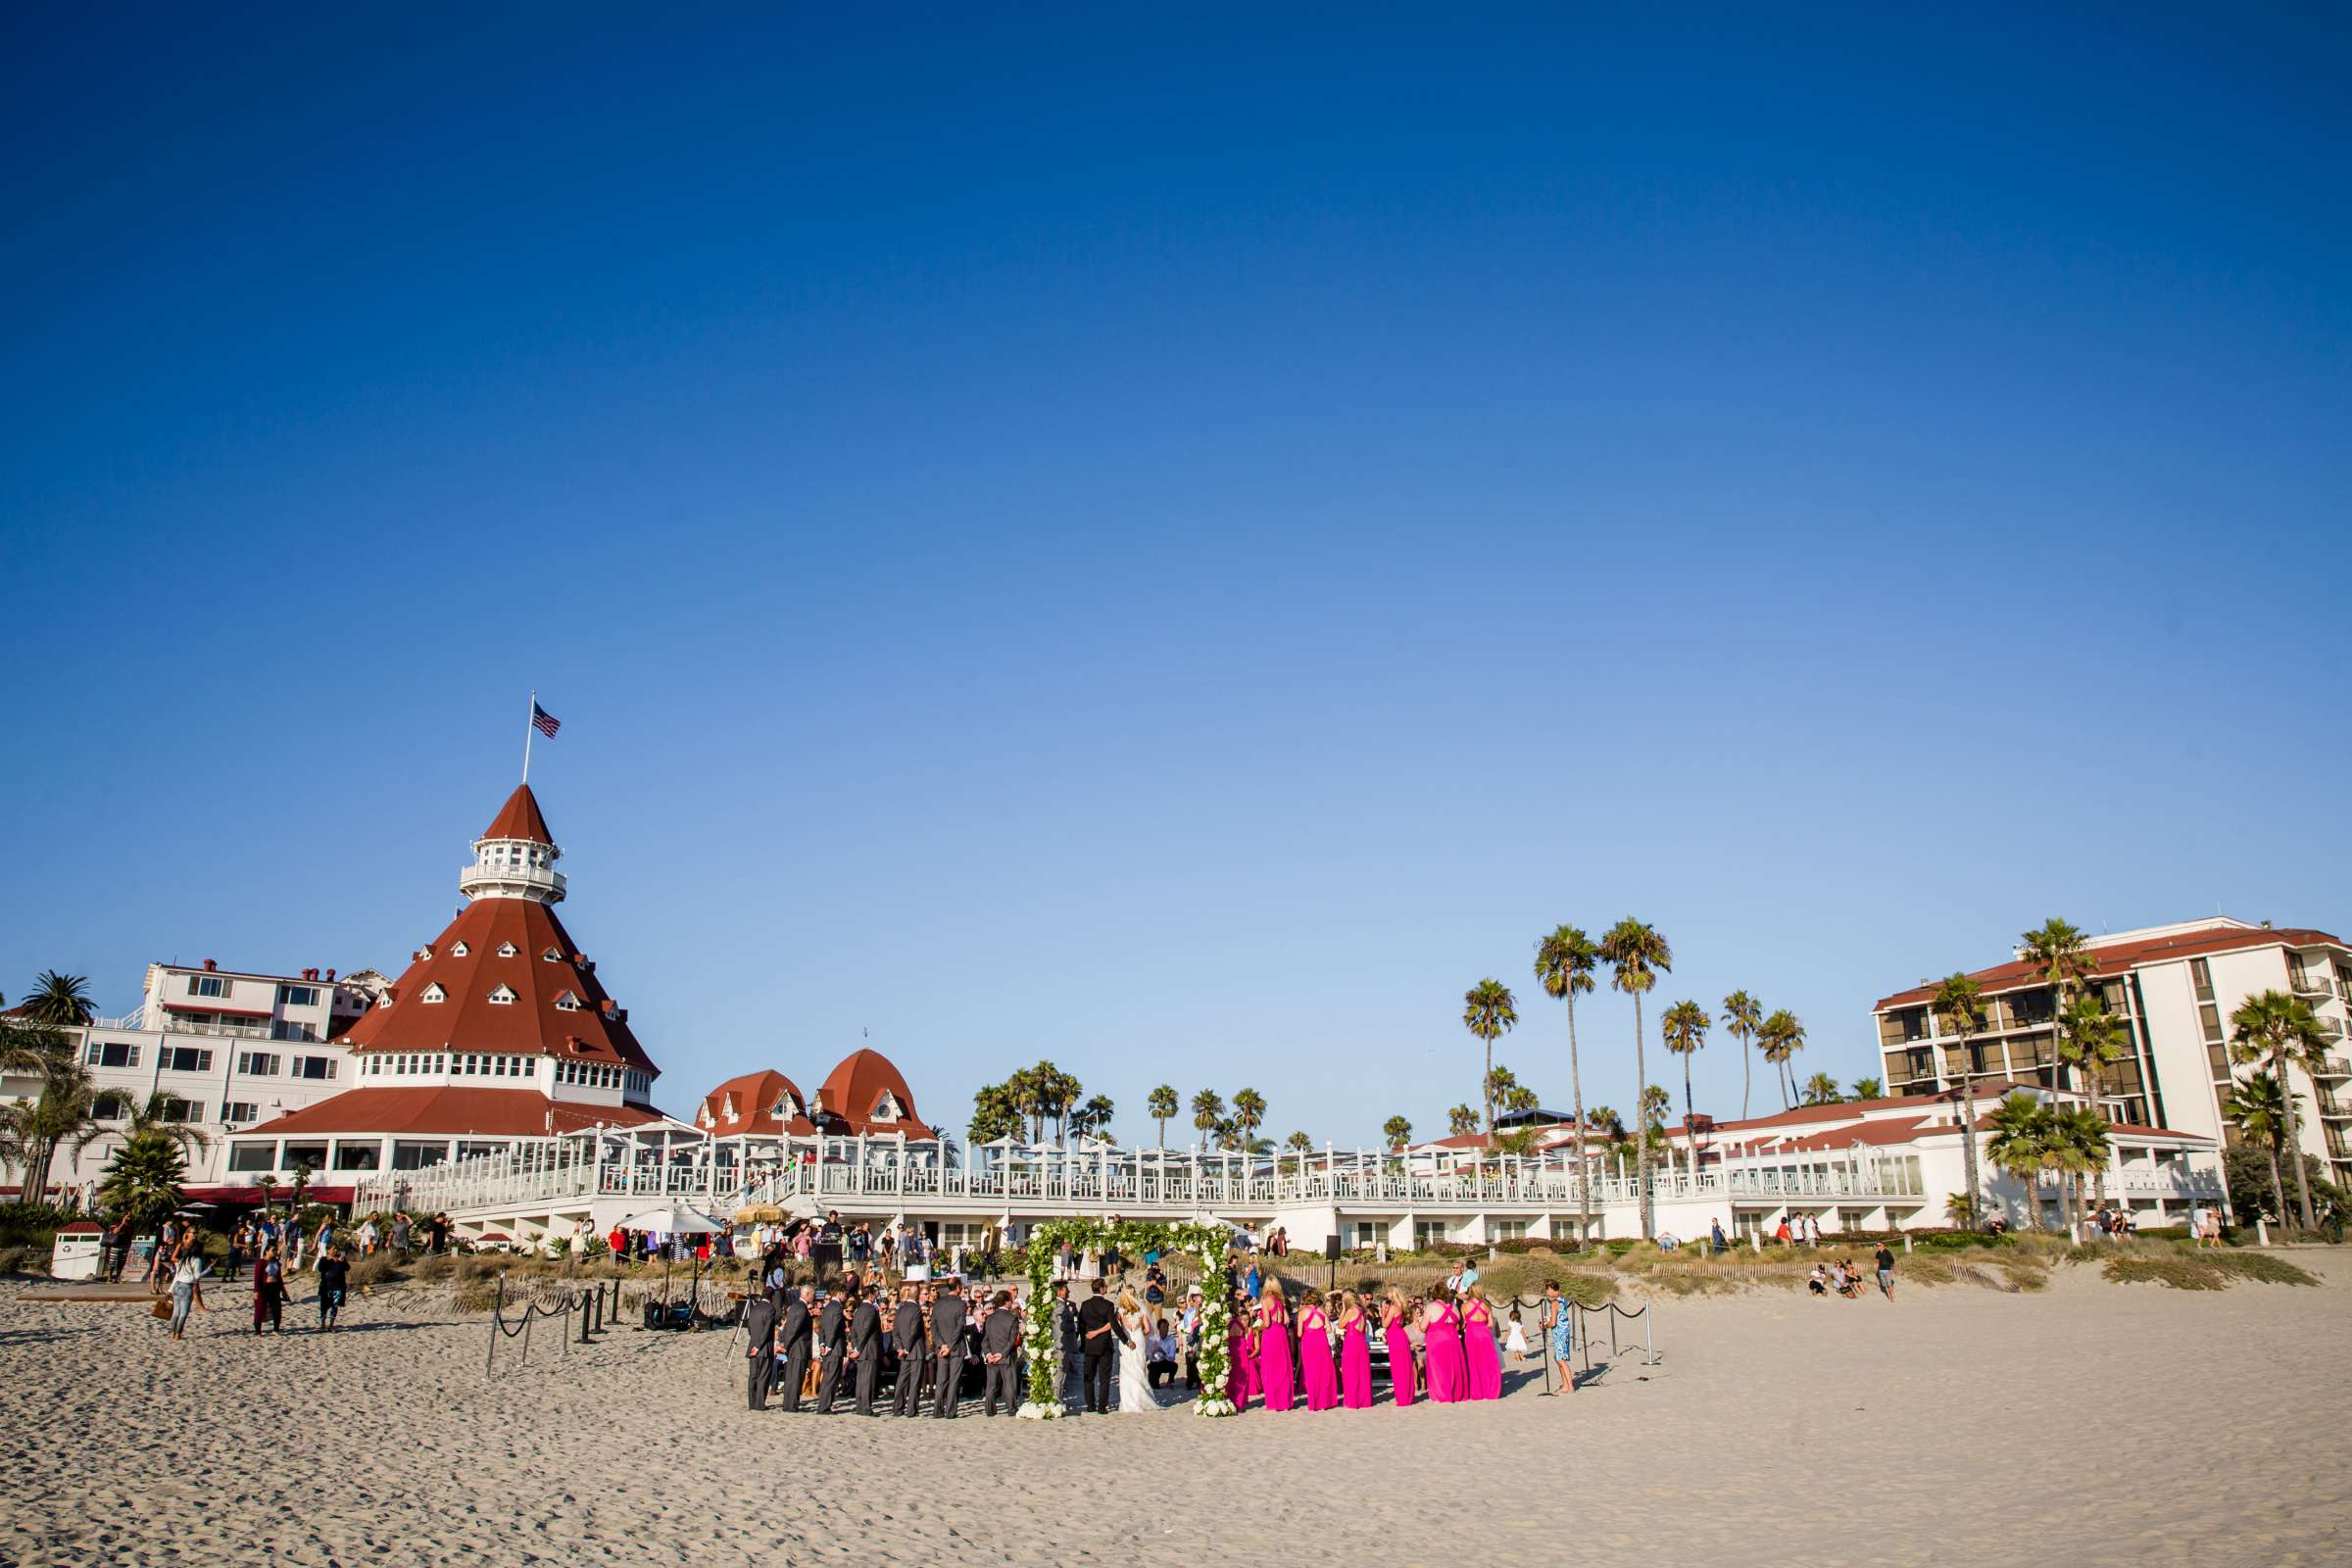 Hotel Del Coronado Wedding coordinated by Creative Affairs Inc, Diane and Paul Wedding Photo #56 by True Photography